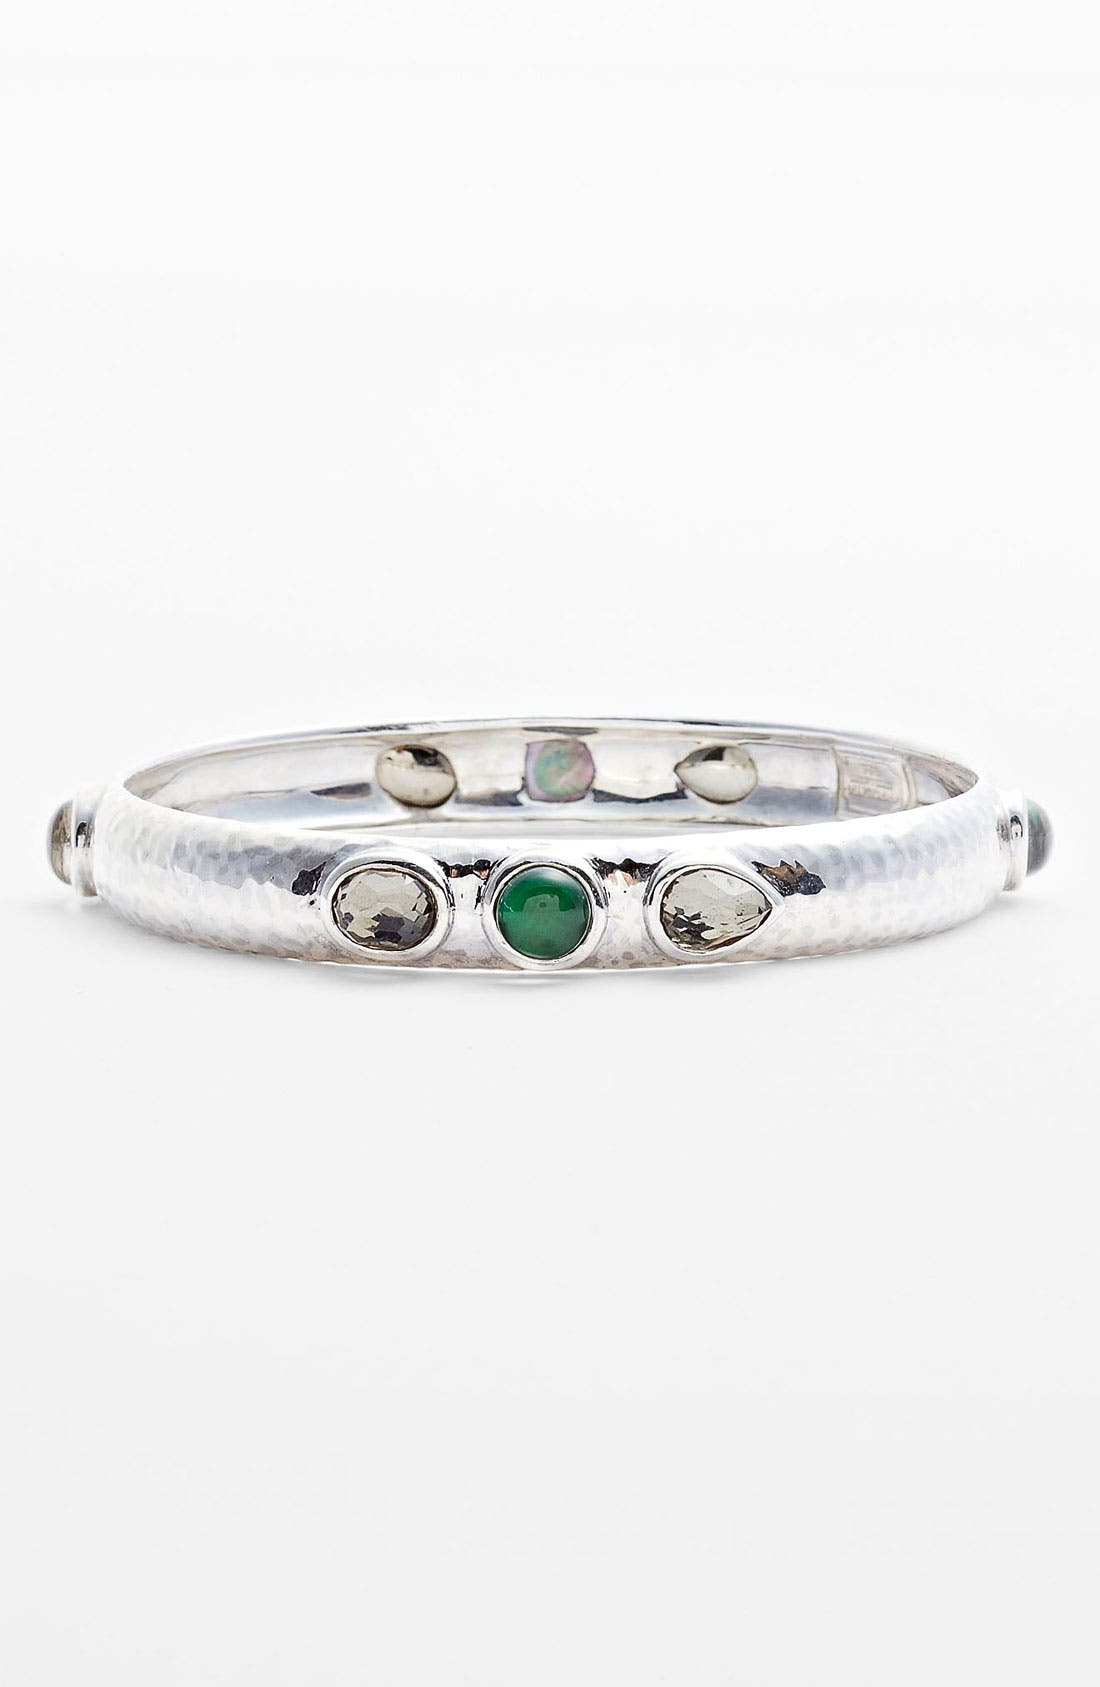 Mosaic 8-Stone Bangle,                             Main thumbnail 1, color,                             Silver/ Prosecco